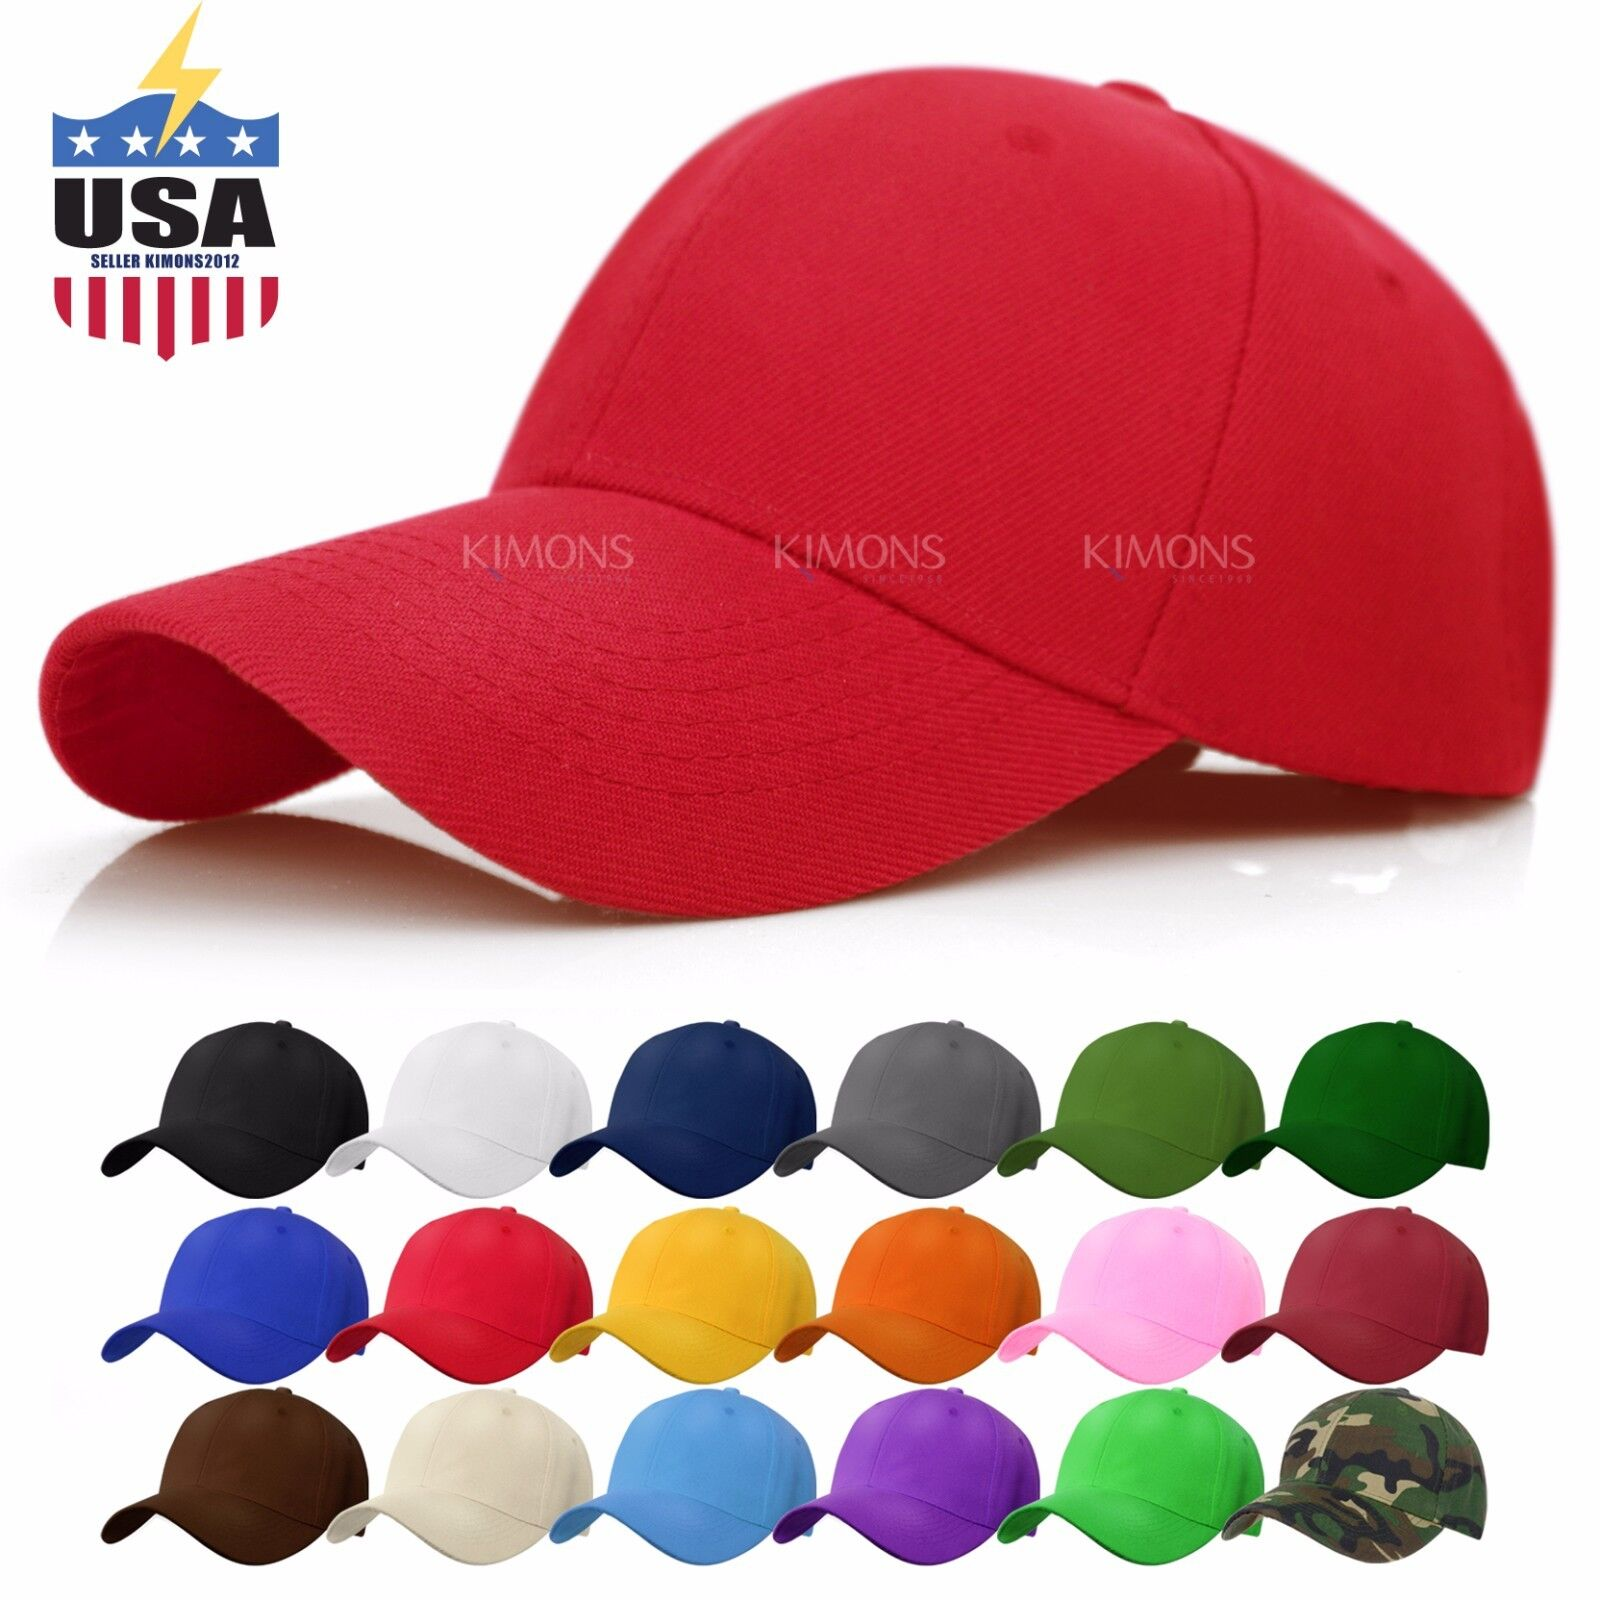 Loop Plain Baseball Cap Solid Color Blank Curved Visor Hat Adjustable Army Mens